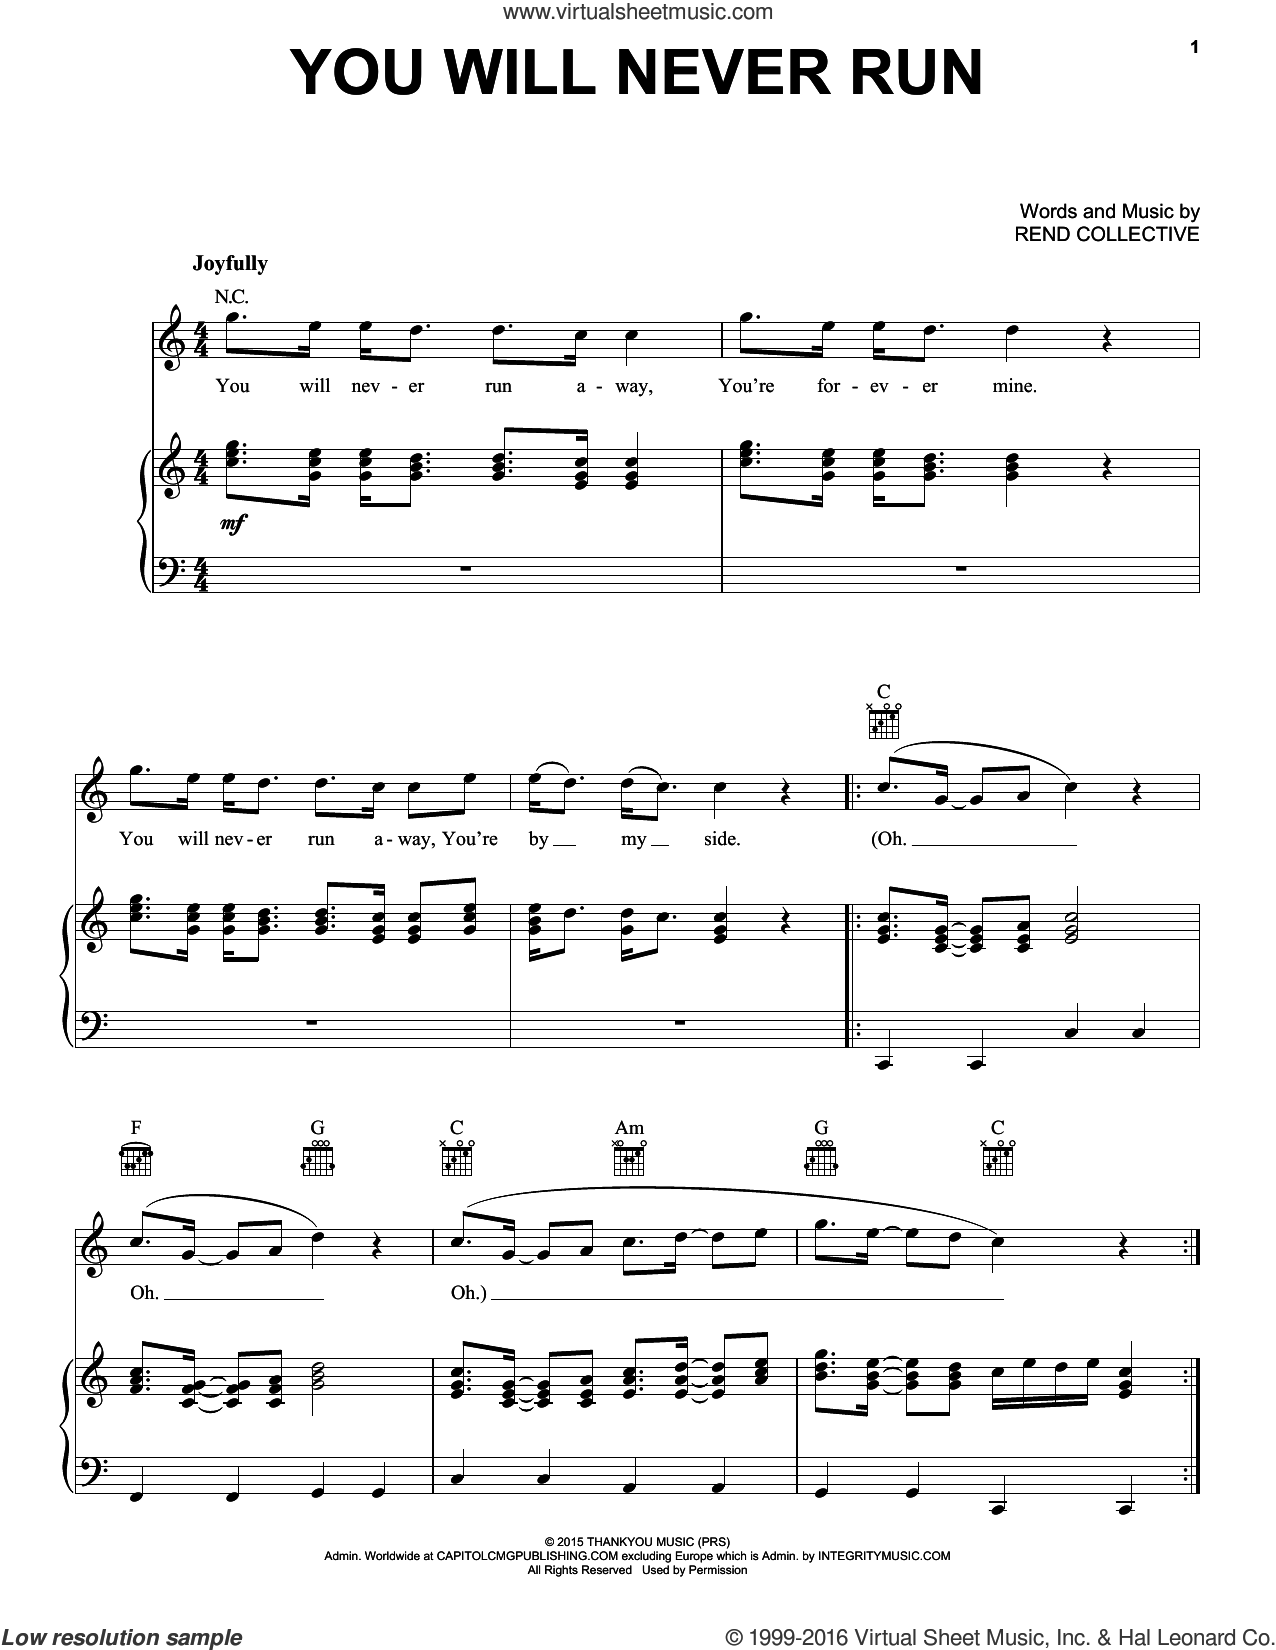 You Will Never Run sheet music for voice, piano or guitar by Rend Collective. Score Image Preview.